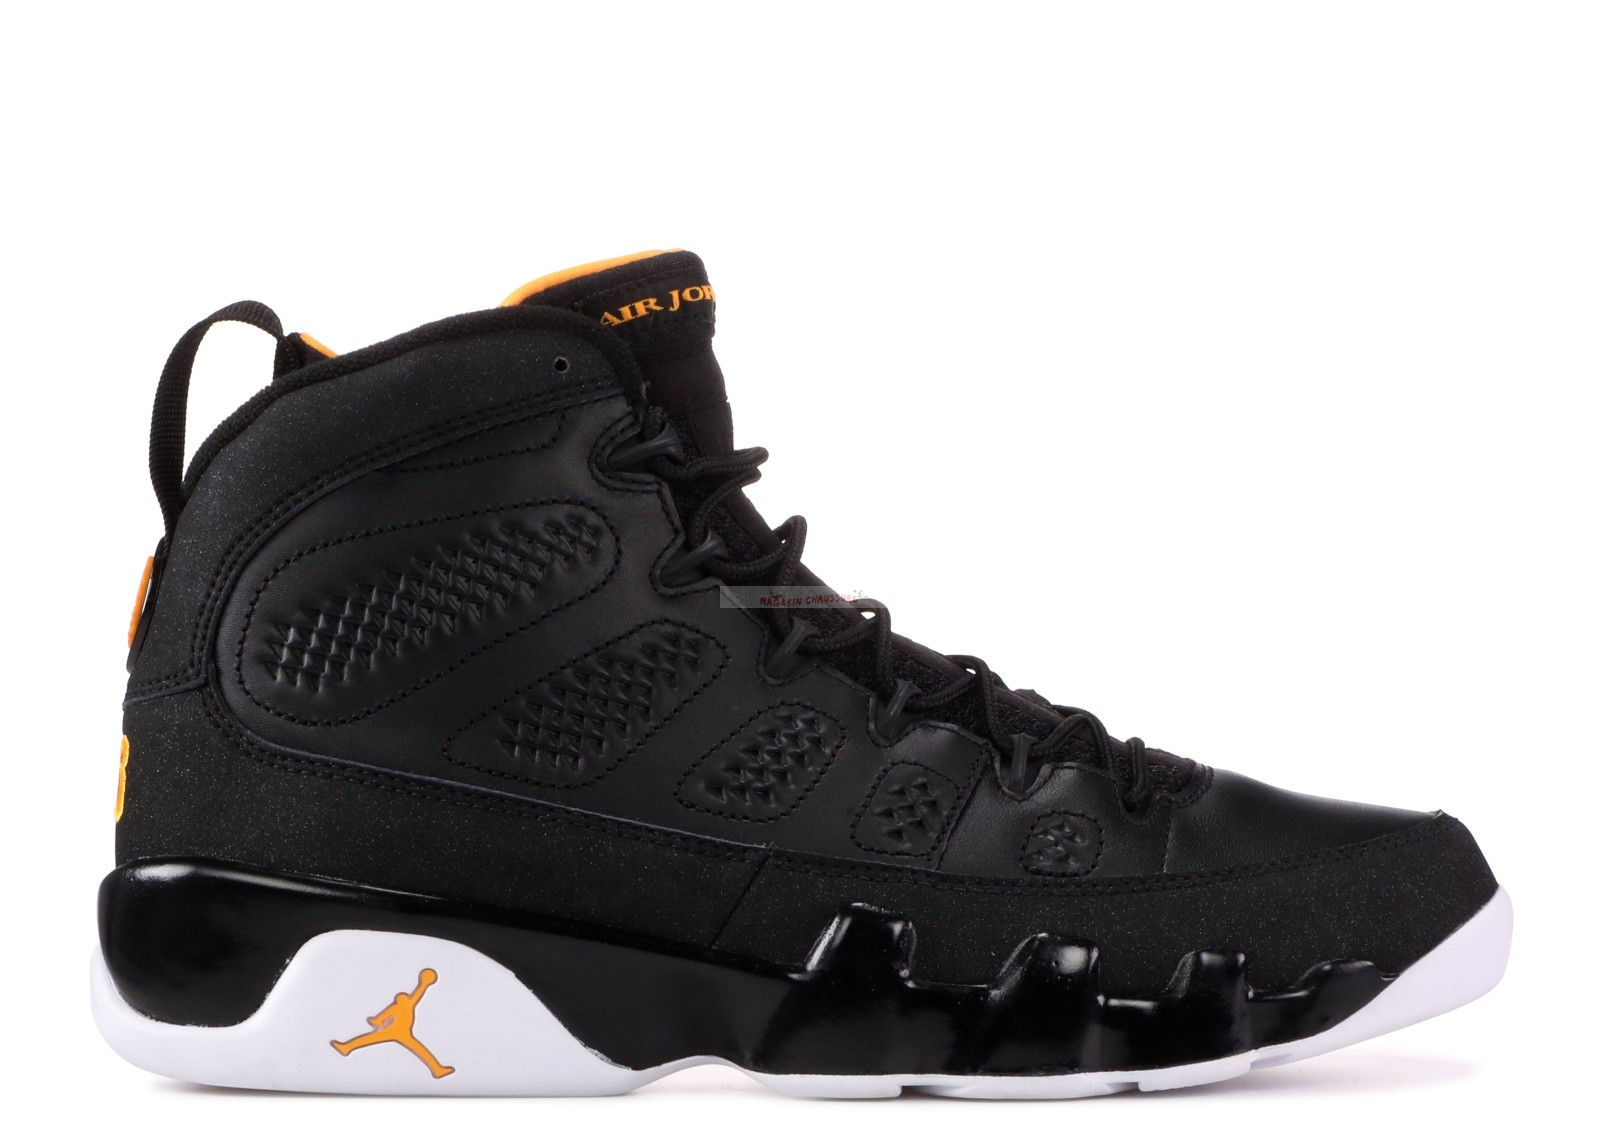 Air Jordan 9 Retro Noir Blanc Orange (302370-004) Chaussure de Basket